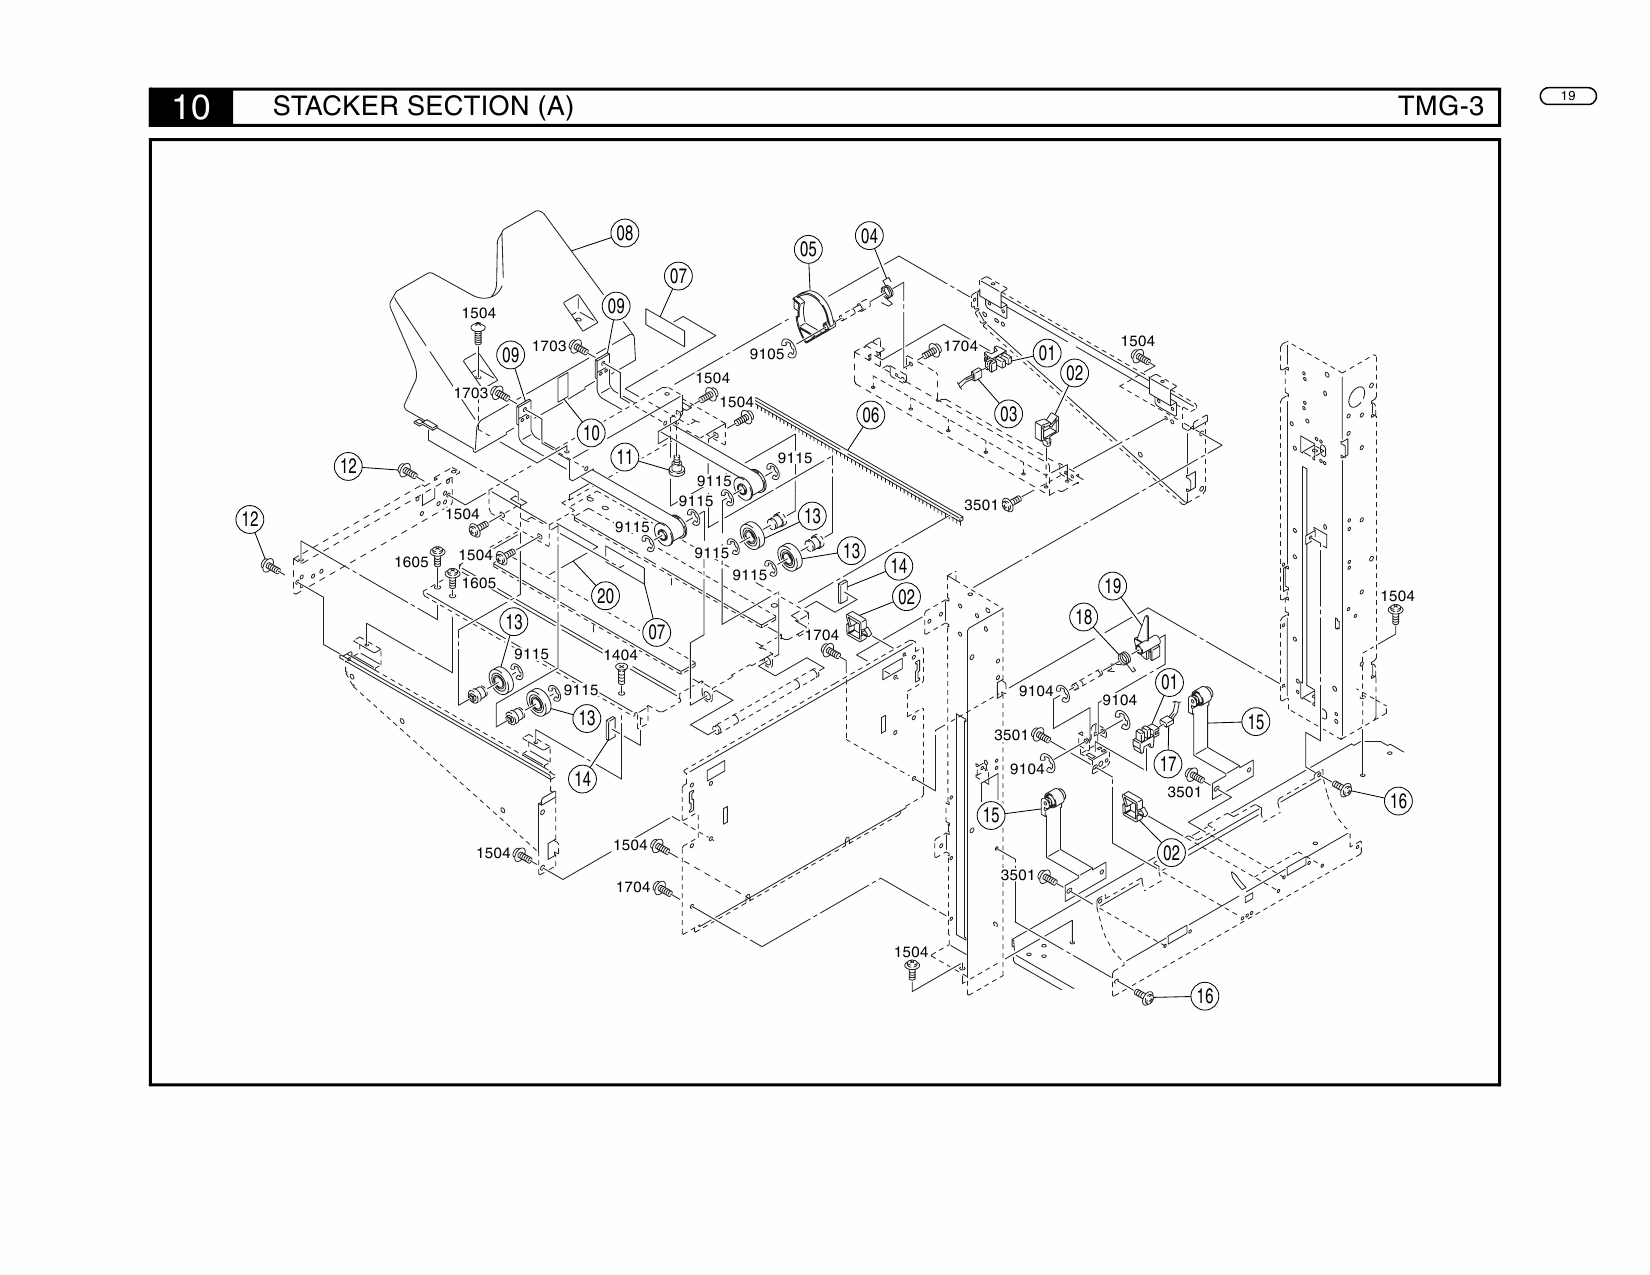 Konica-Minolta Options TMG-3 Parts Manual